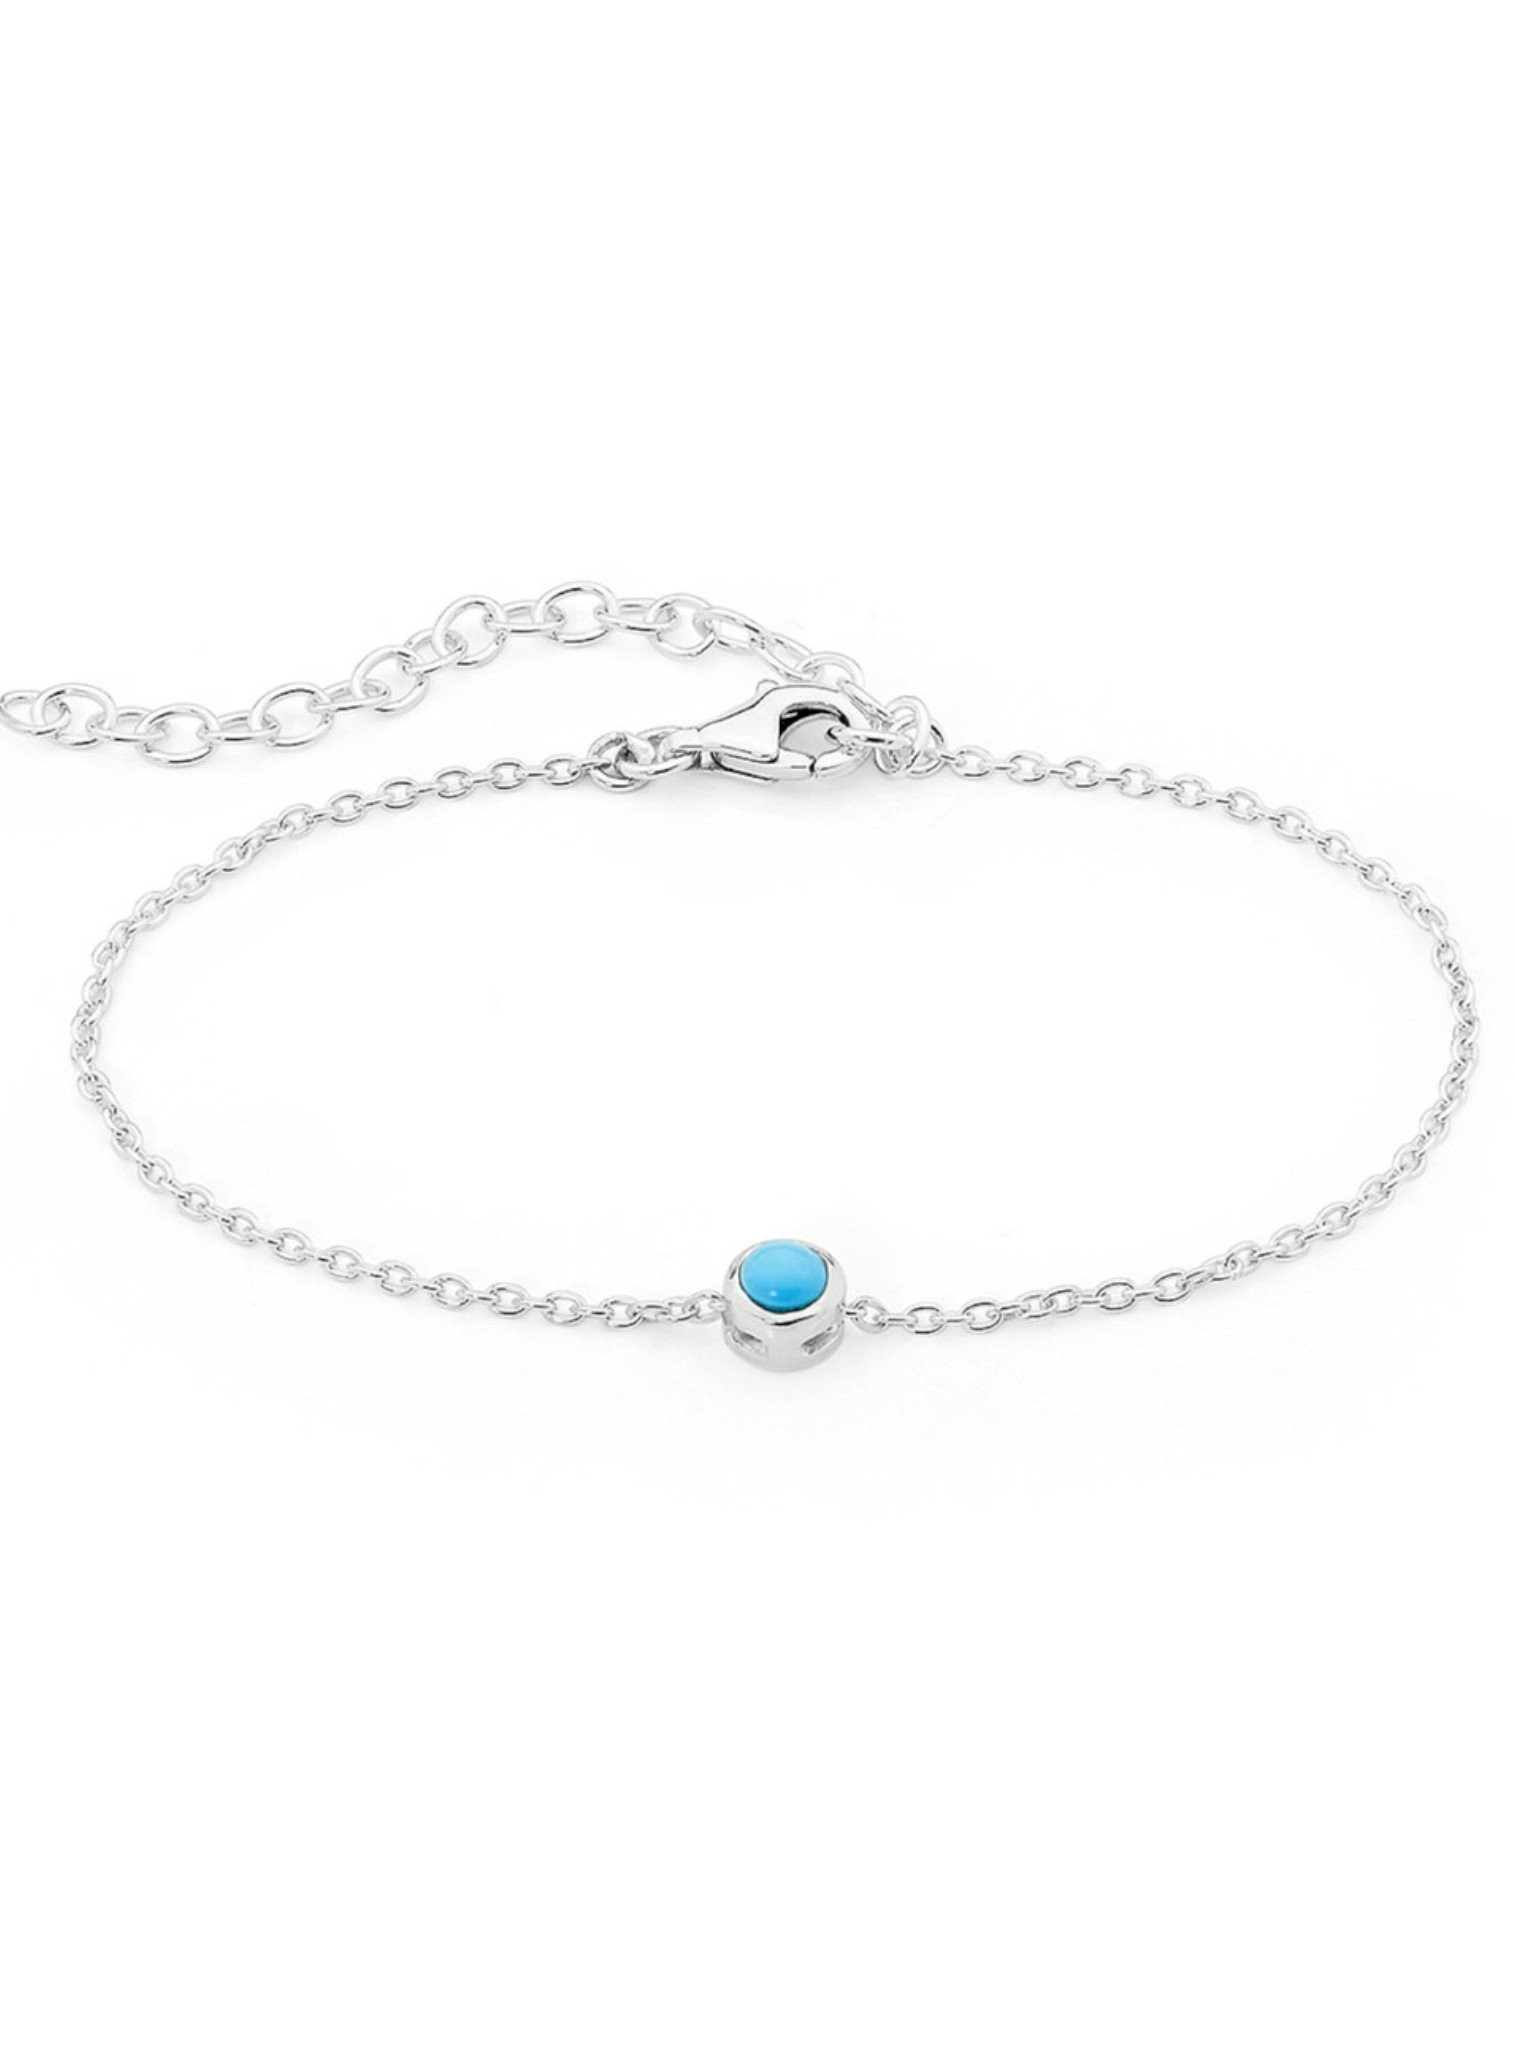 Turquoise Solitaire Bracelet in Sterling Silver